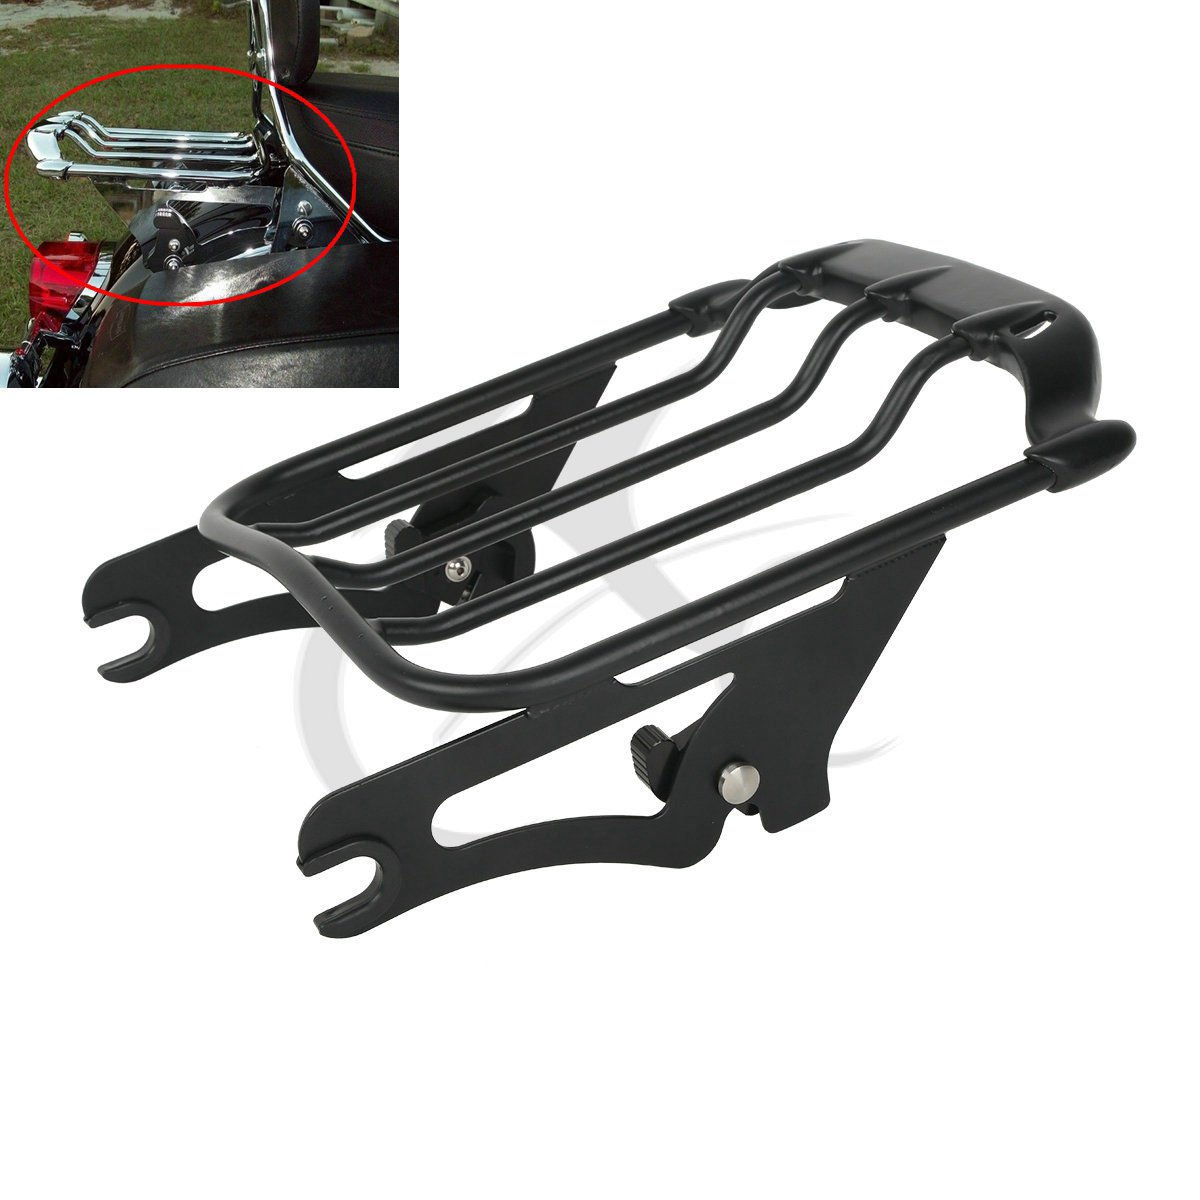 XFMT Motorcycles Chrome 2-UP Air Wing Luggage Rack Mount fits Compatible with Harley Touring Street Glide FLHX 2009-2018